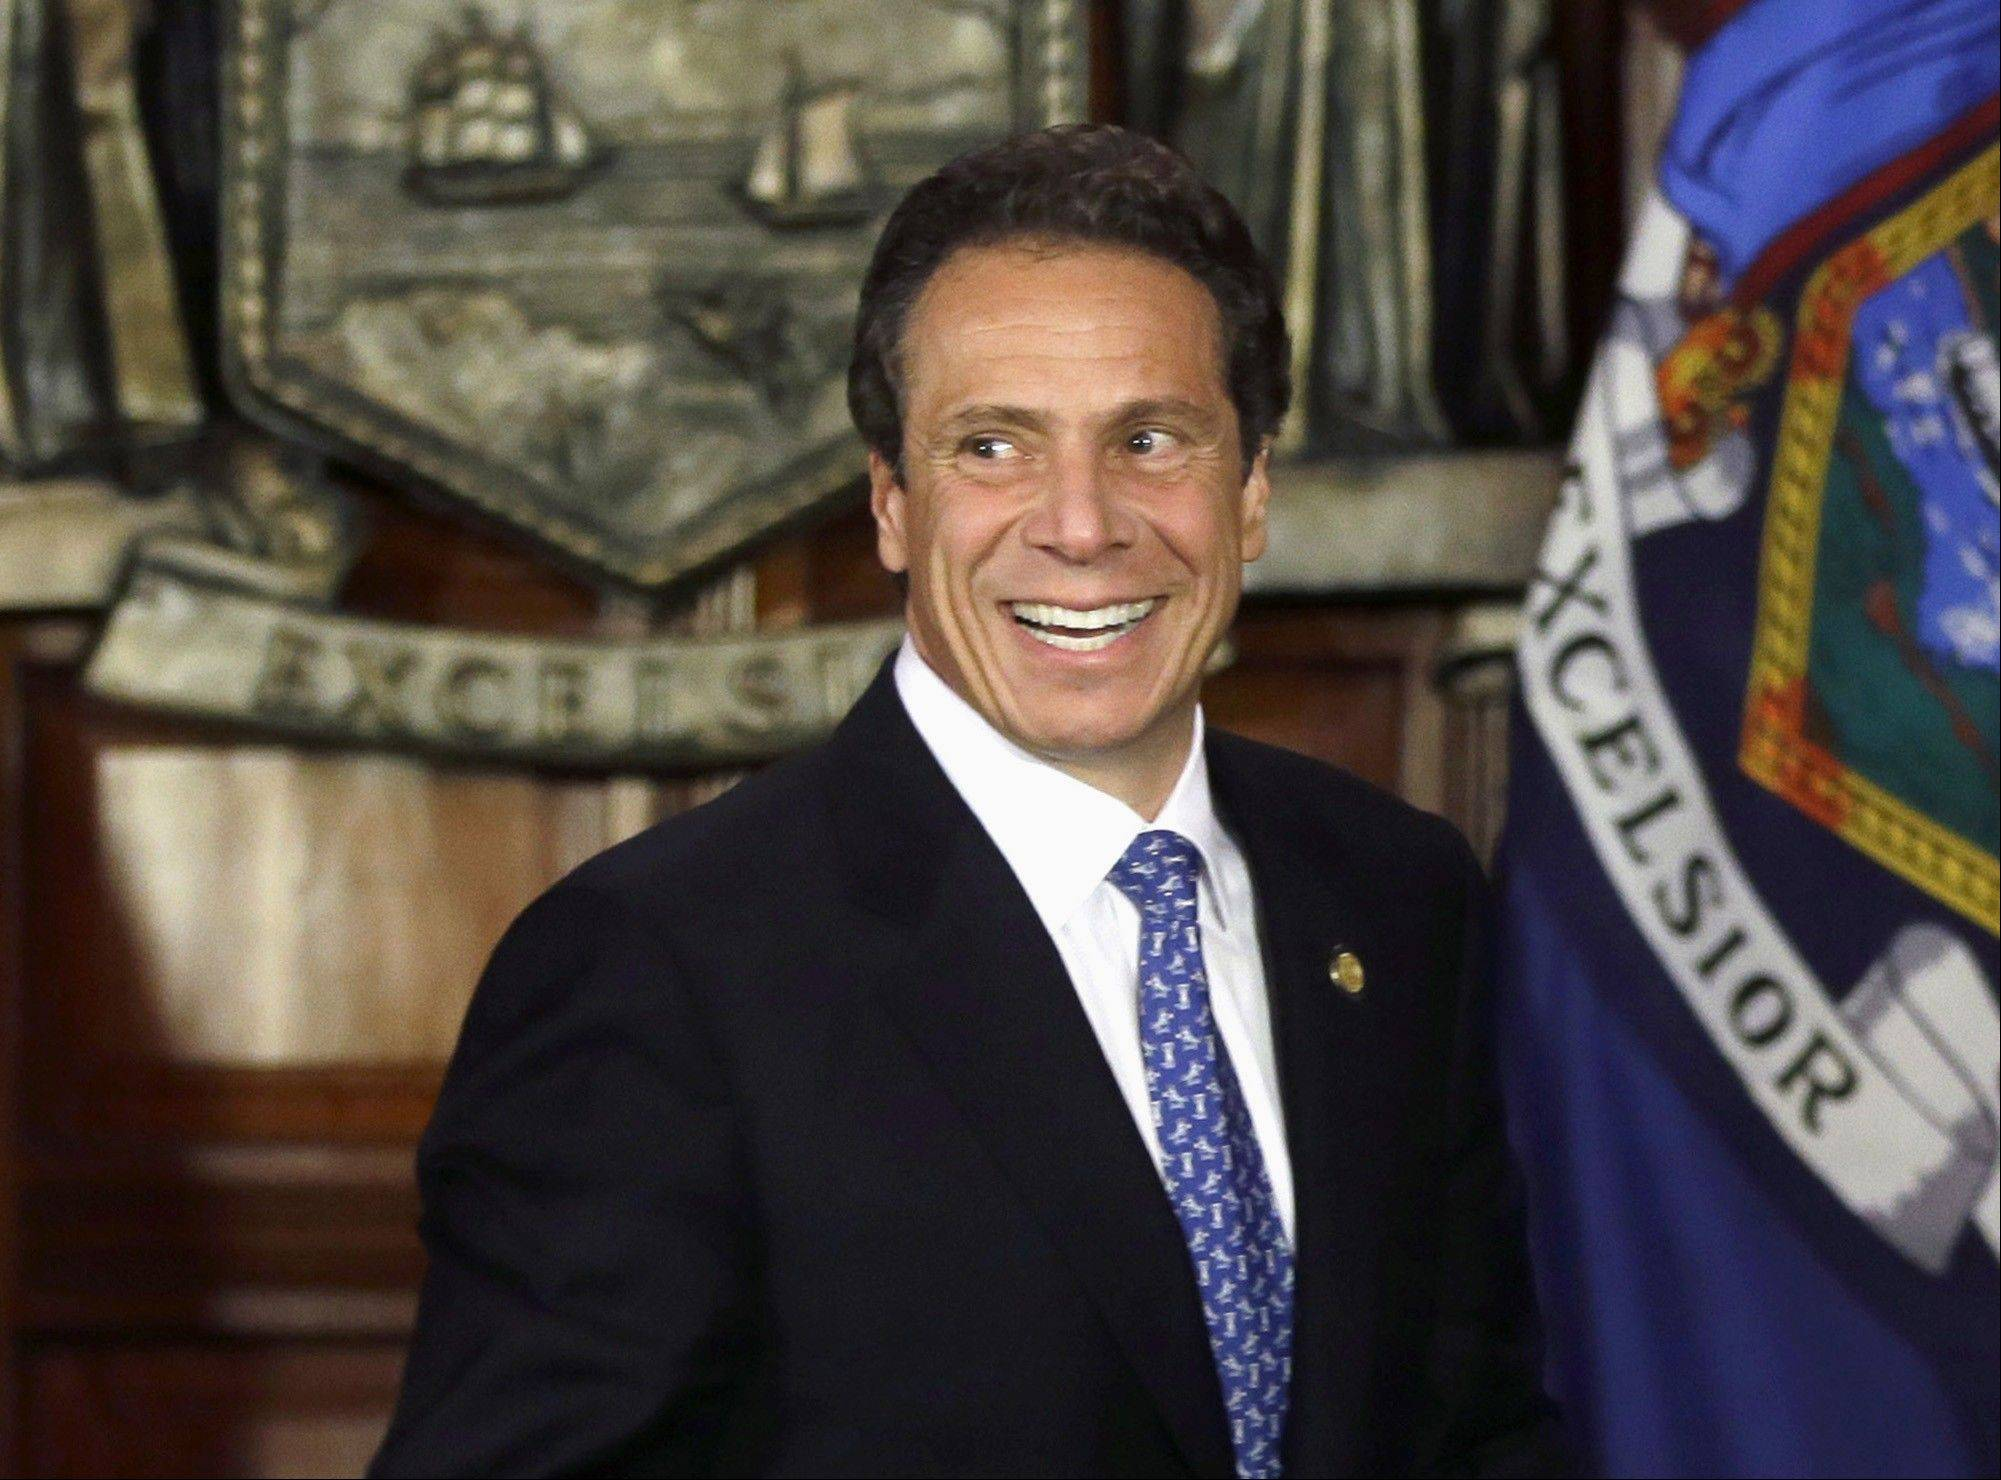 In this July 2, 2013 file photo, New York Gov. Andrew Cuomo takes part in a ceremony in Albany, N.Y. Get your face on TV and write a book: Check. Start meeting the big money people: Check. Visit Iowa, New Hampshire, South Carolina _ Israel, too: Check. Deny any of this has to do with running for president: Check. For politicians planning or tempted to run for the presidency in 2016, the to-do list is formidable. Whatís striking is how methodically most of them are plowing through it while they pretend nothing of the sort is going on.